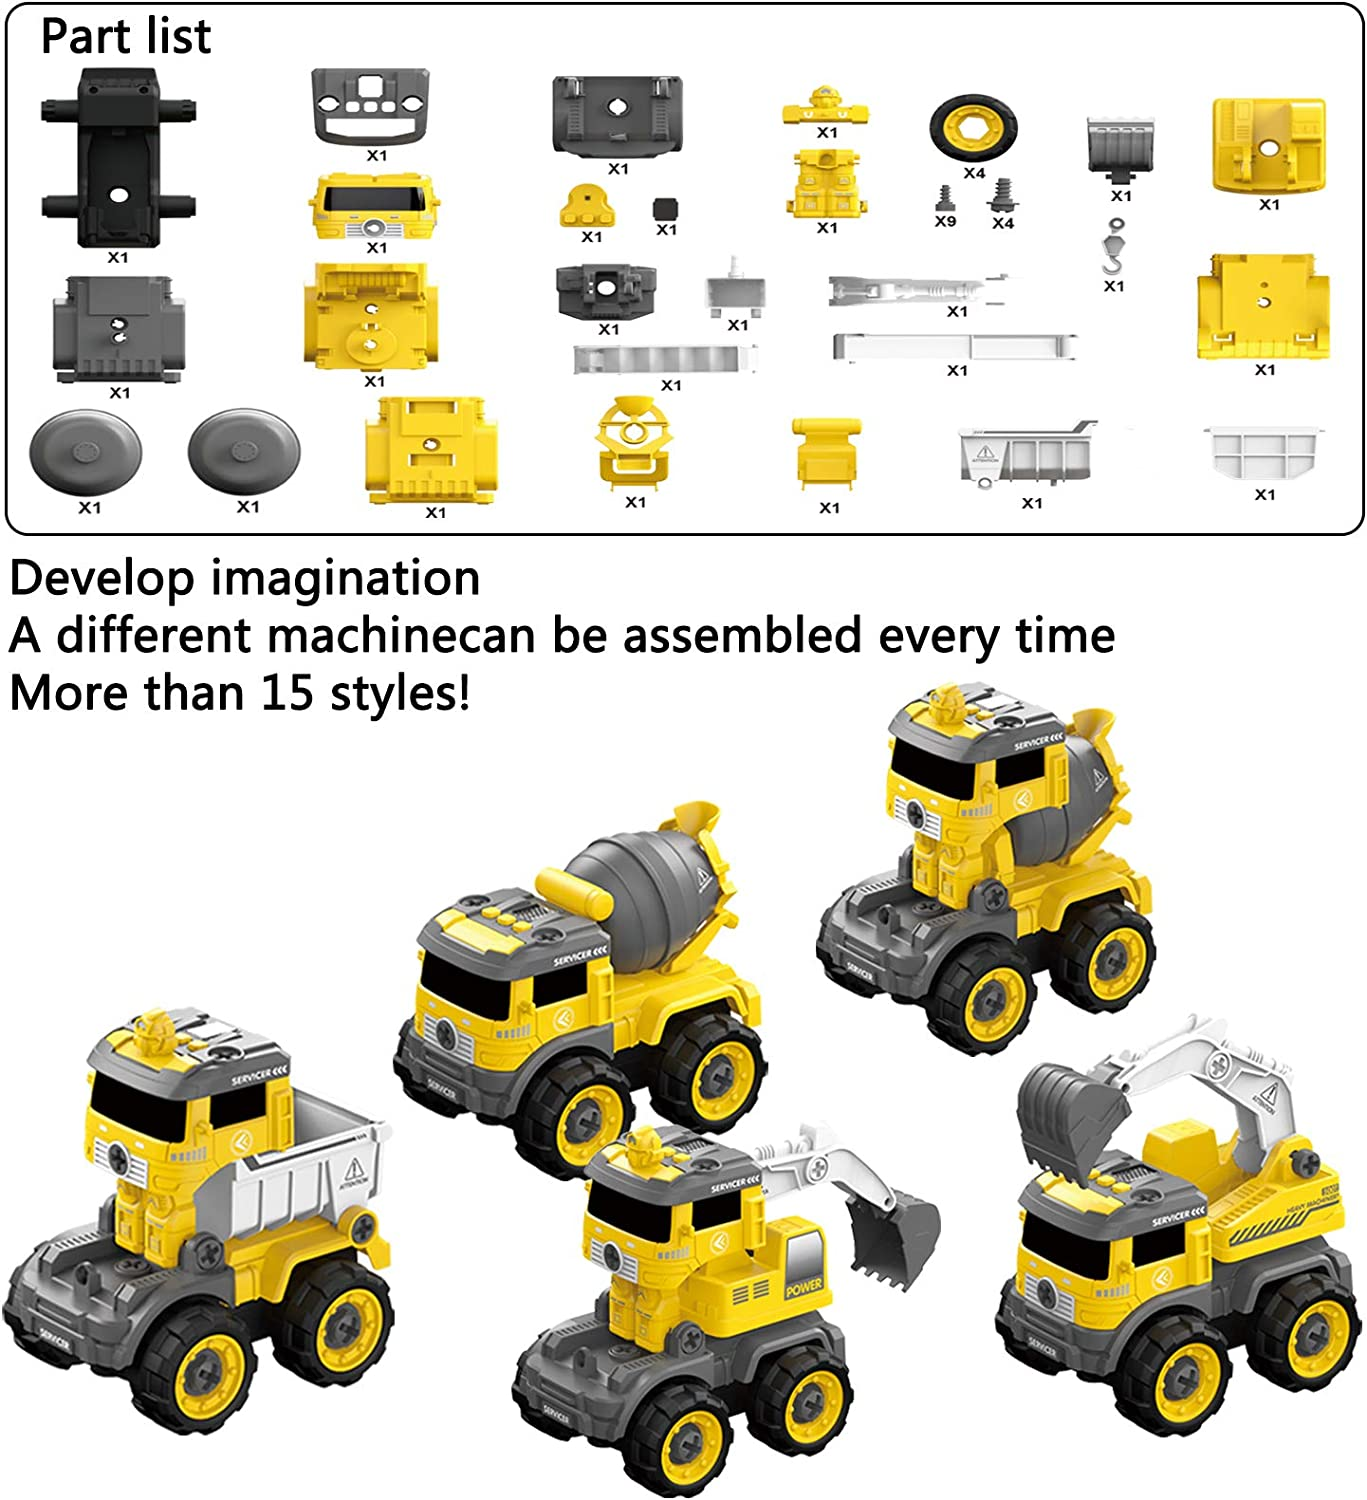 5 in 1 Take Apart Toys with Electric Drill Converts to Remote Control Car for Boys 3 4 5 6 7 8 Year Old Include Construction Excavator Truck Crane Kids DIY Educational Birthday